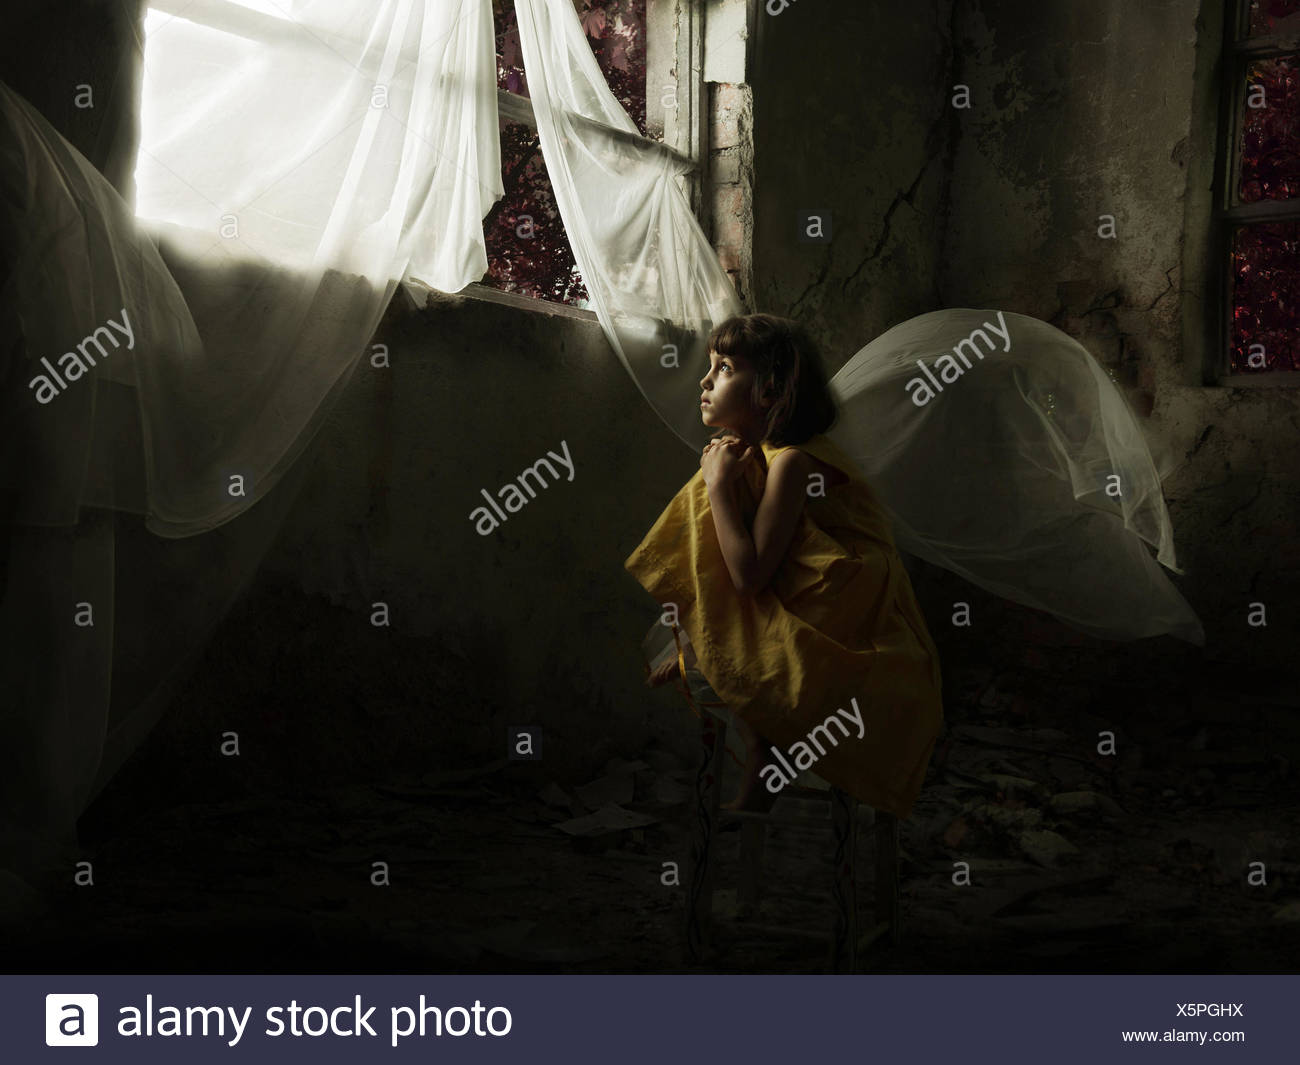 Girl sitting on a chair looking out of a window in an abandoned house - Stock Image